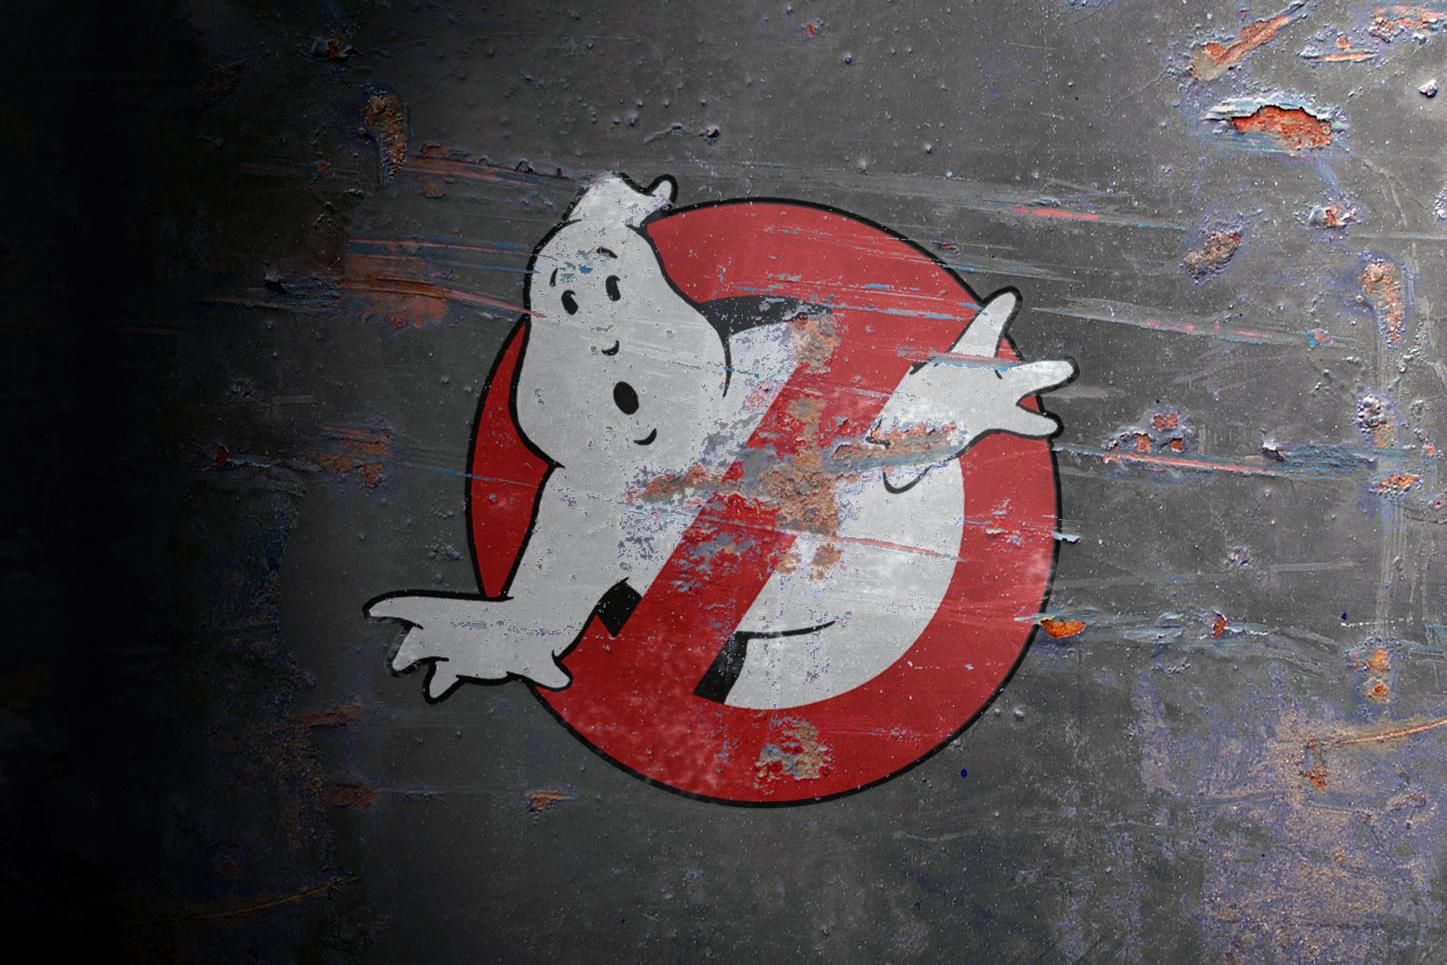 Ghostbusters producer/director denies spinoff movie reports Channing Tatum Movies